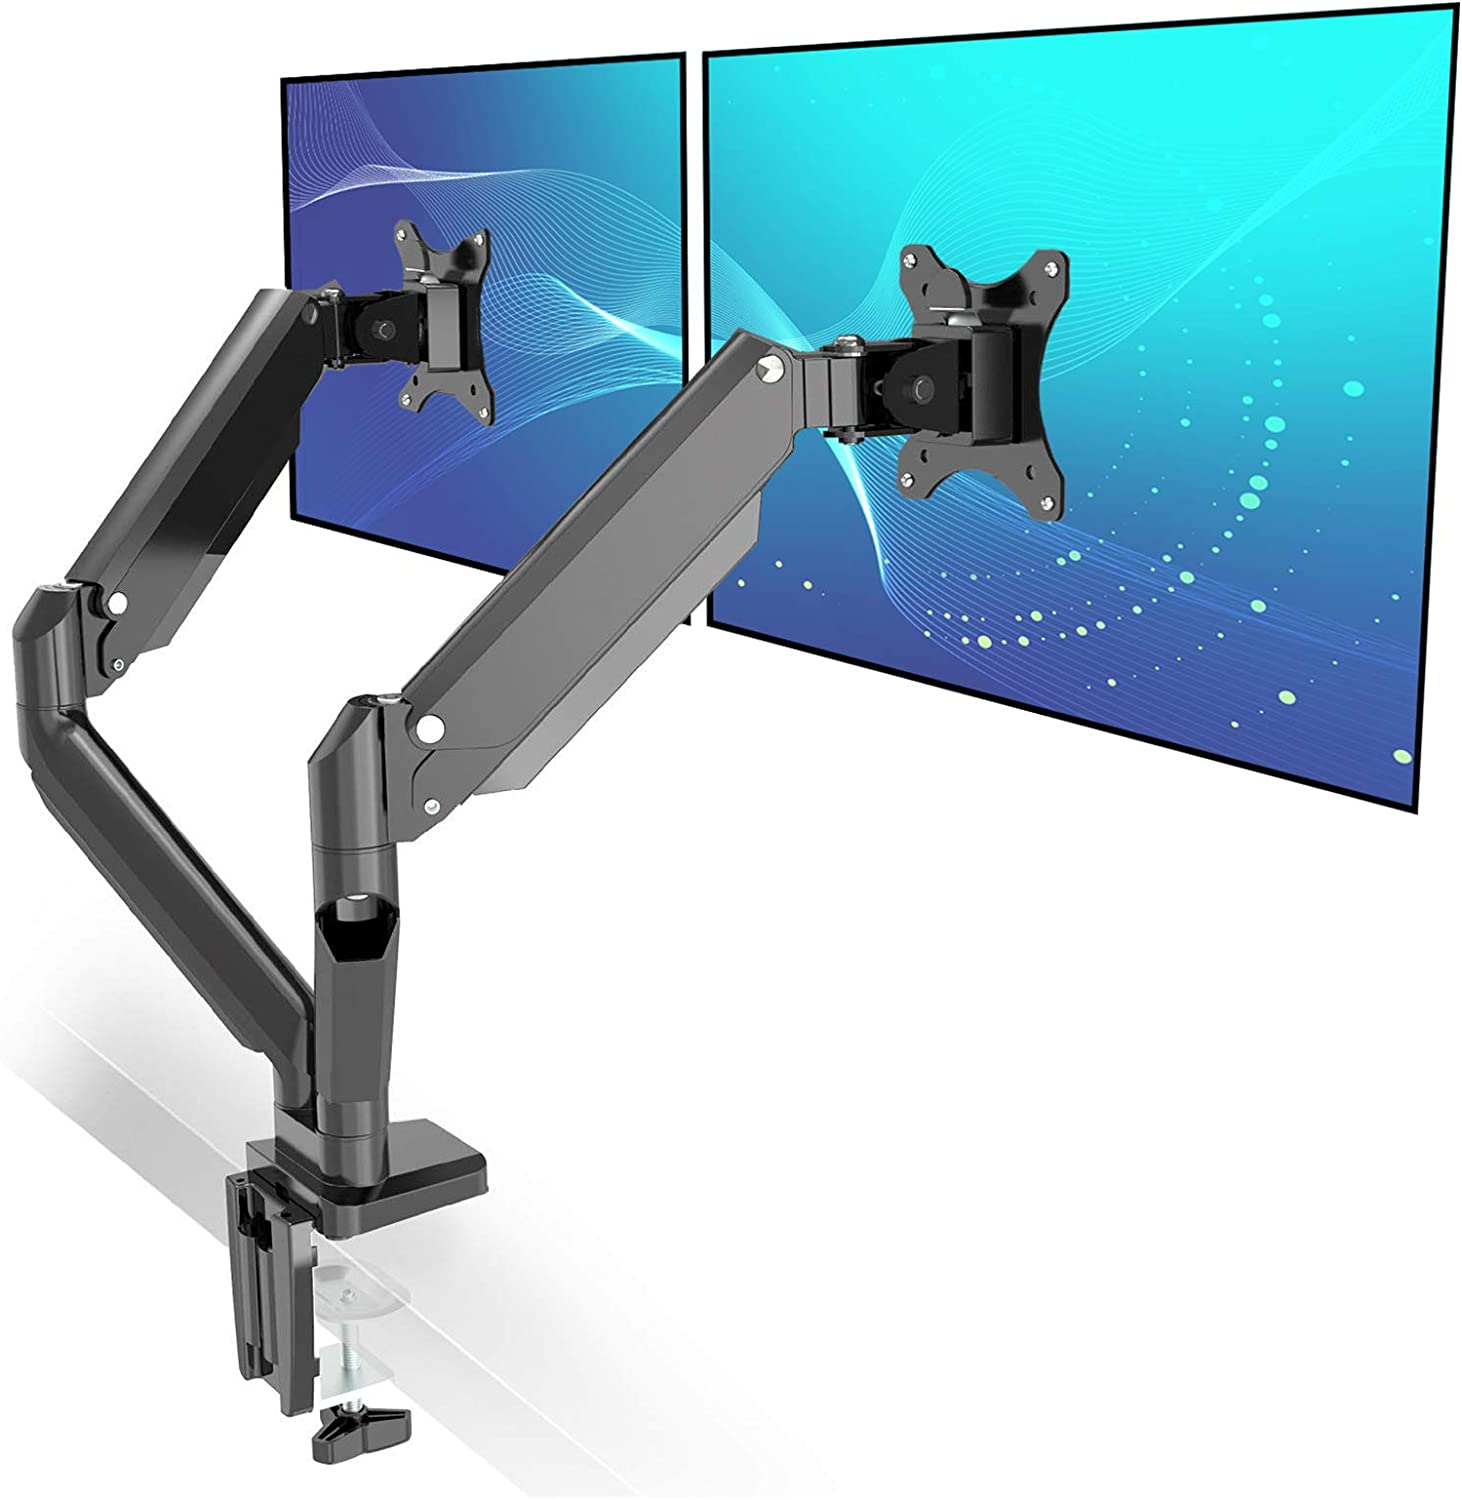 Metiya Dual Monitor Mount Stand Full Motion Gas Spring Double Monitor Arms for Two Screens 17-32 Inch with 17.6lbs Loading for Each Monitor, Black